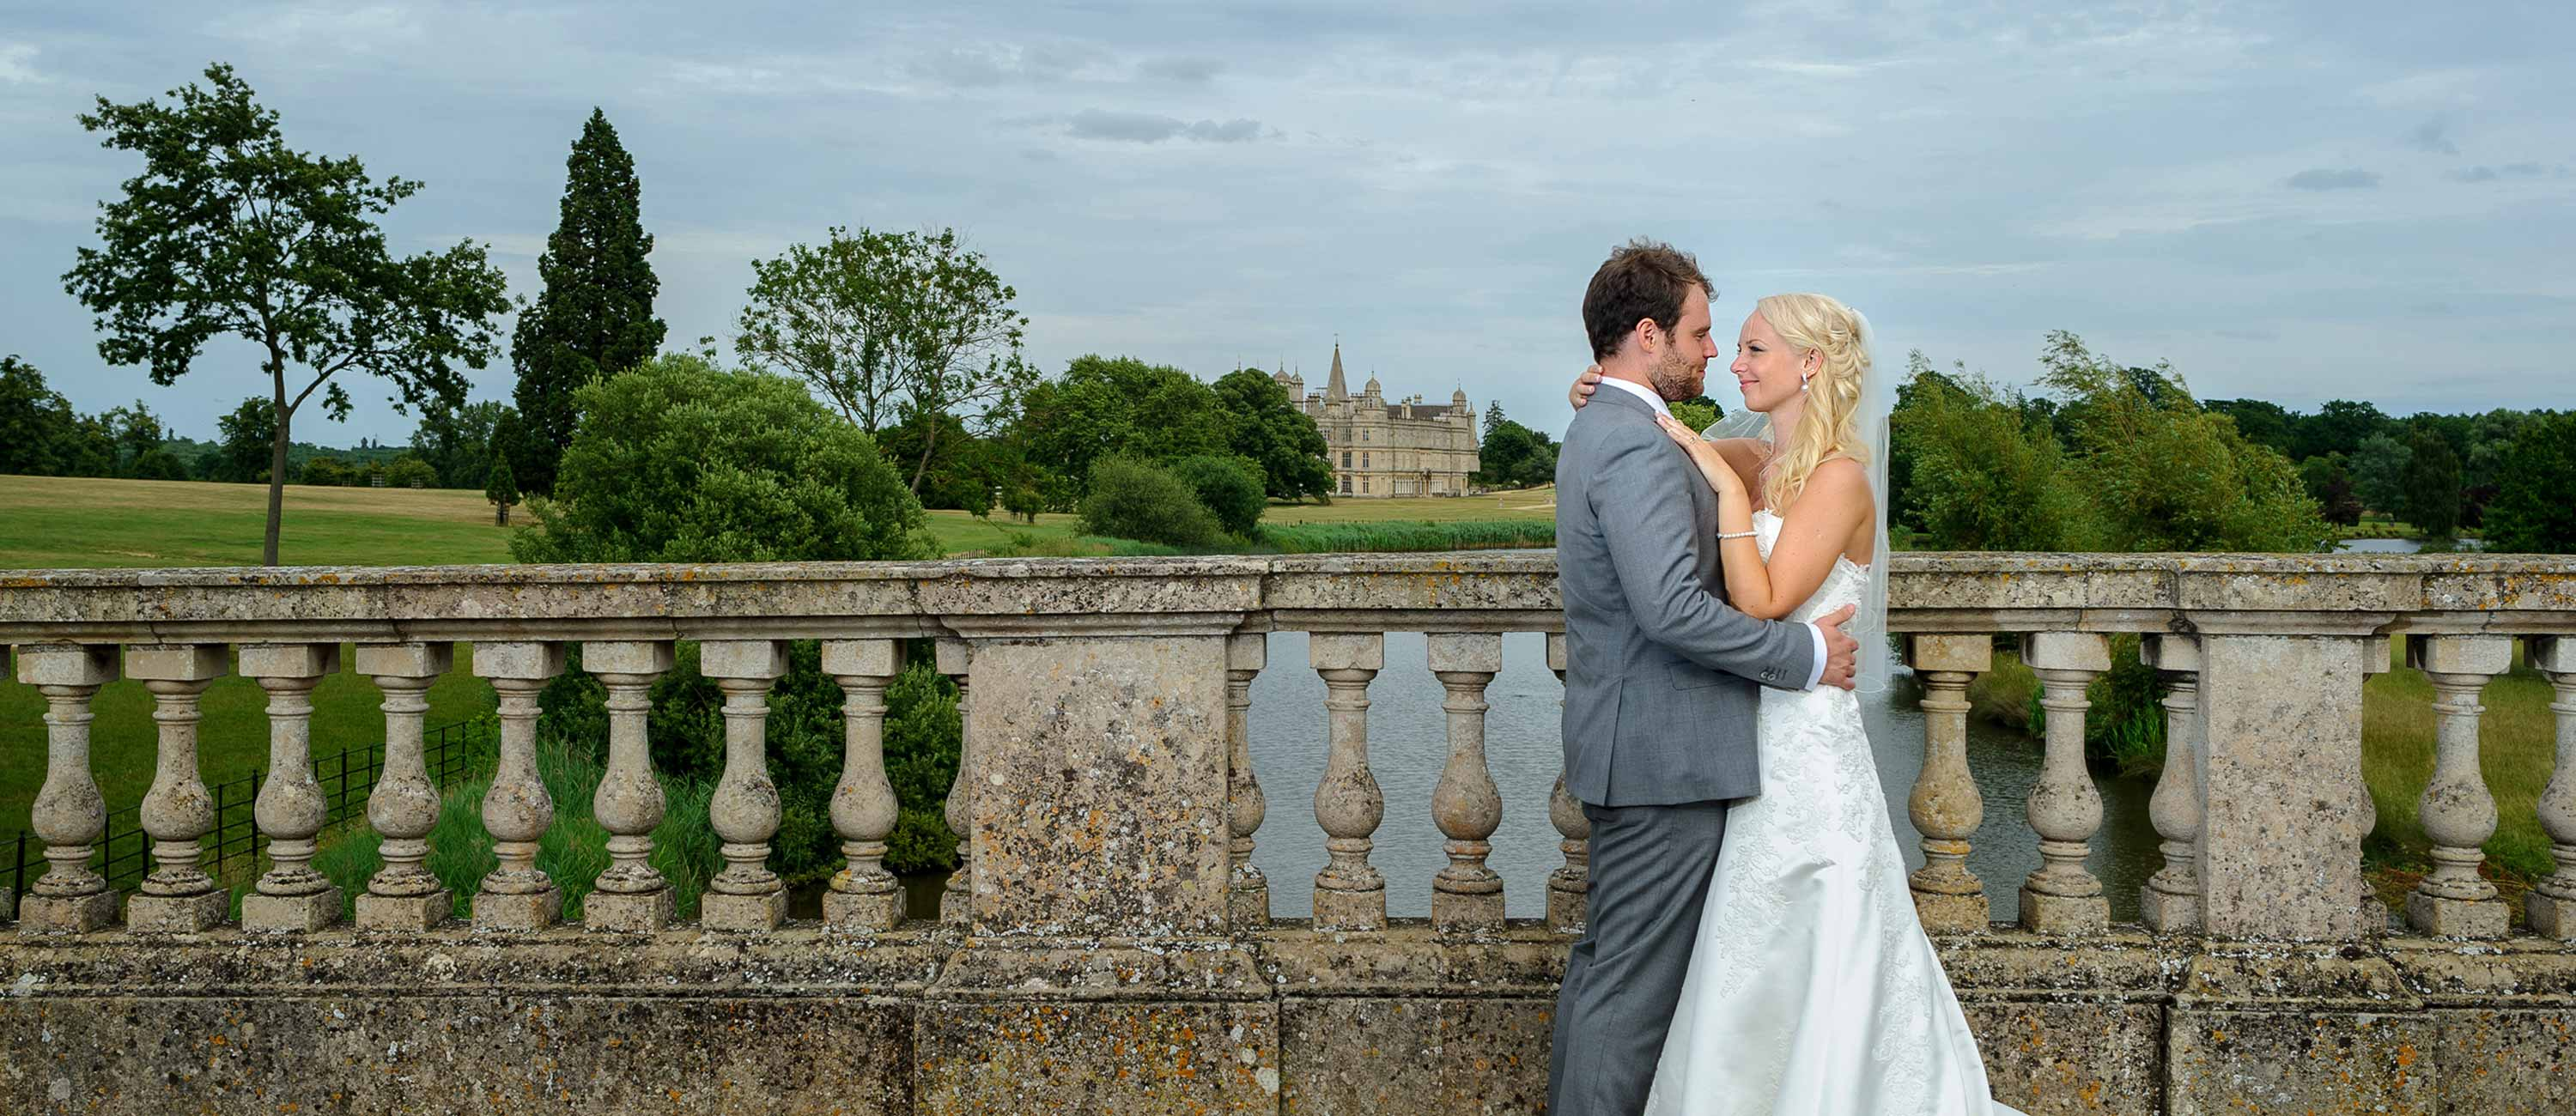 recommended wedding photographer burghely house